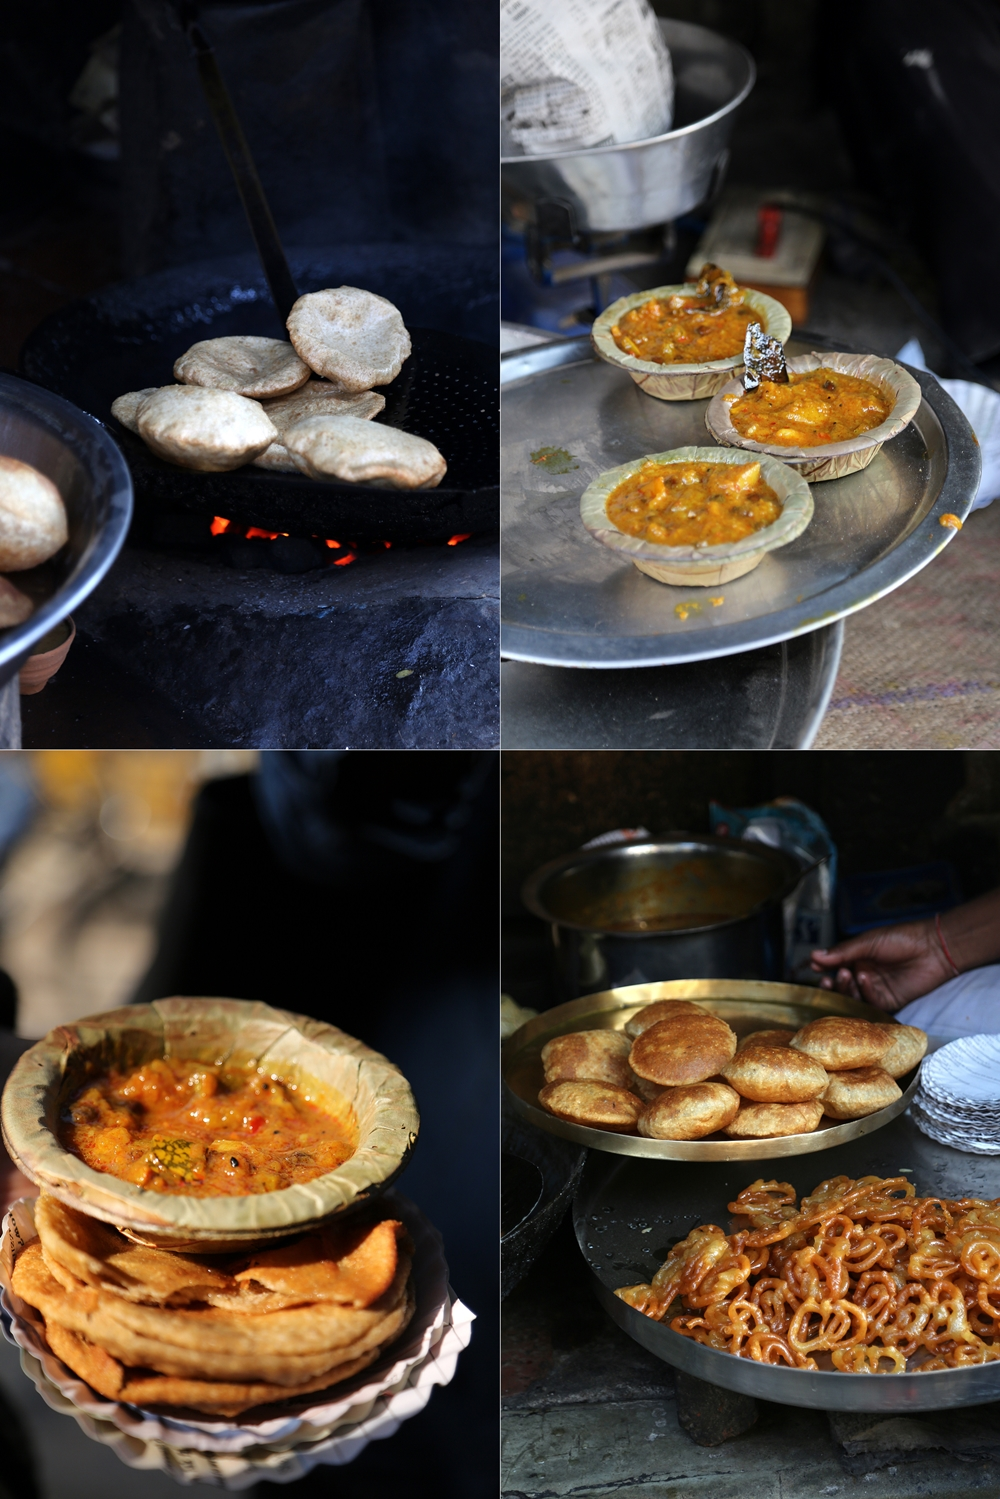 Kachori with Sabzi, Banaras 2016